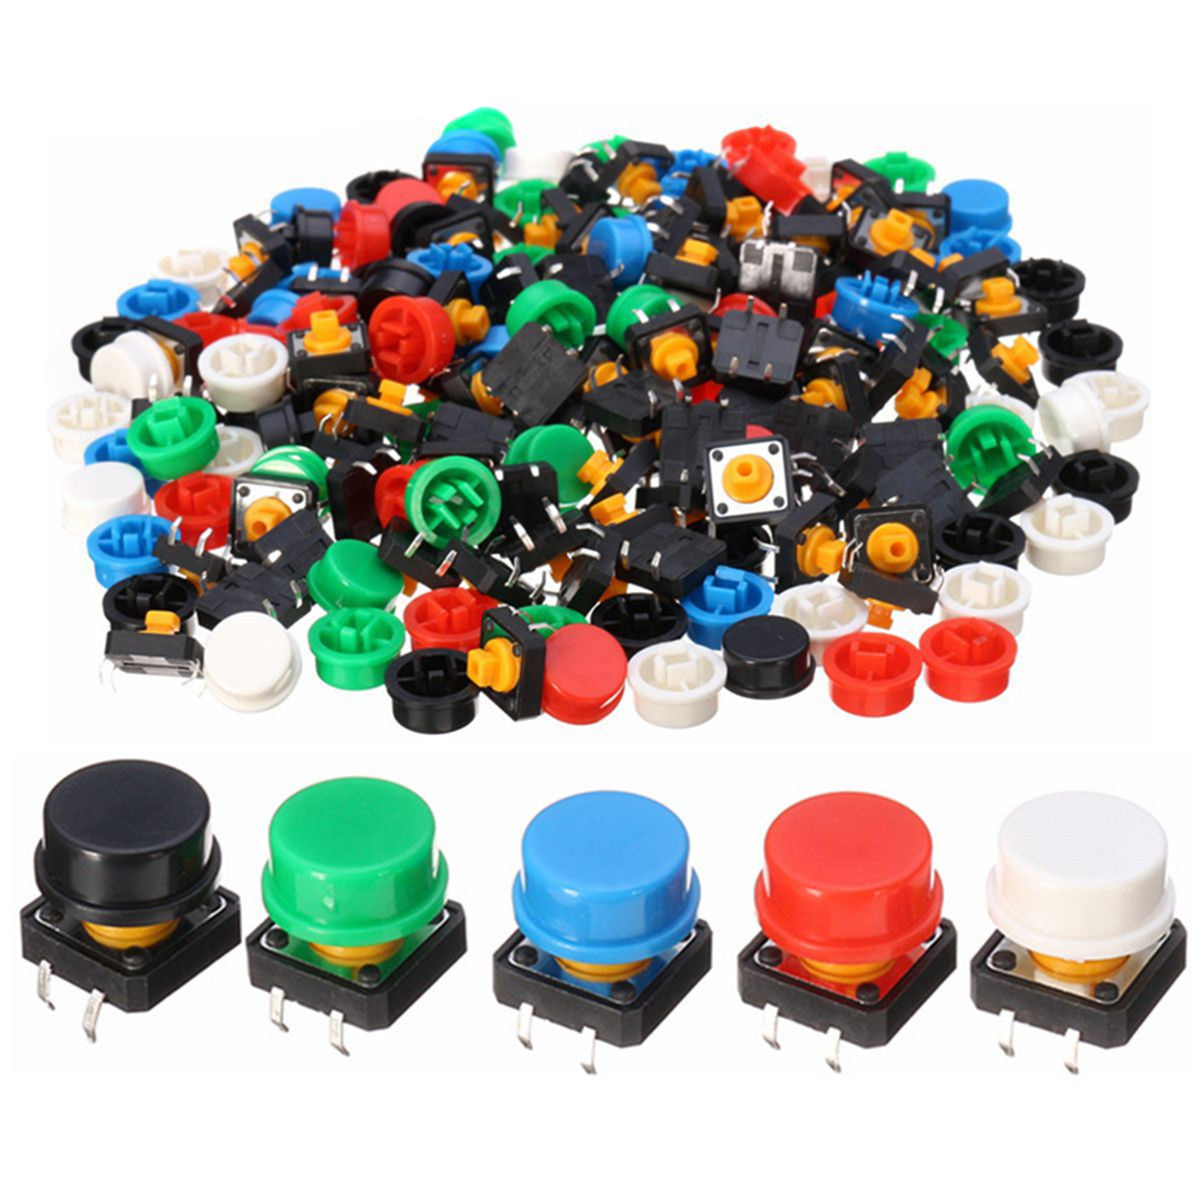 100pcs Plastic Tactile Switch PCB Tact Push Button Momentary Switch 4 Pins + 5 Color Button Cap 12*12*7.3mm Mayitr